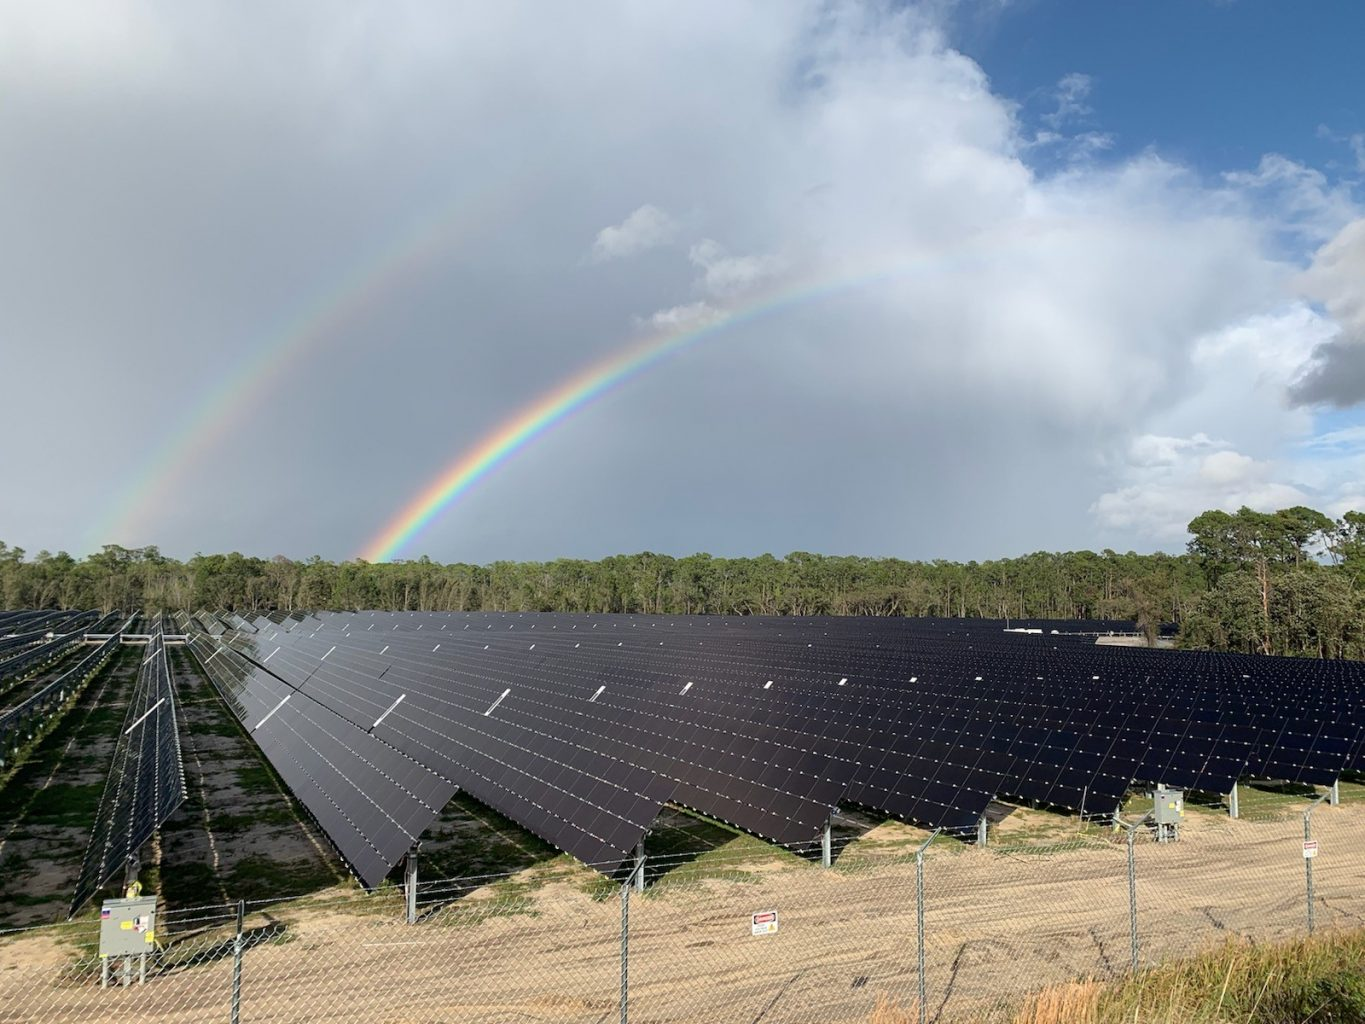 DEPCOM Power Provides EPC/O&M Services for New 52 MWac Solar Facility Now Providing Clean Energy to Reedy Creek Improvement District